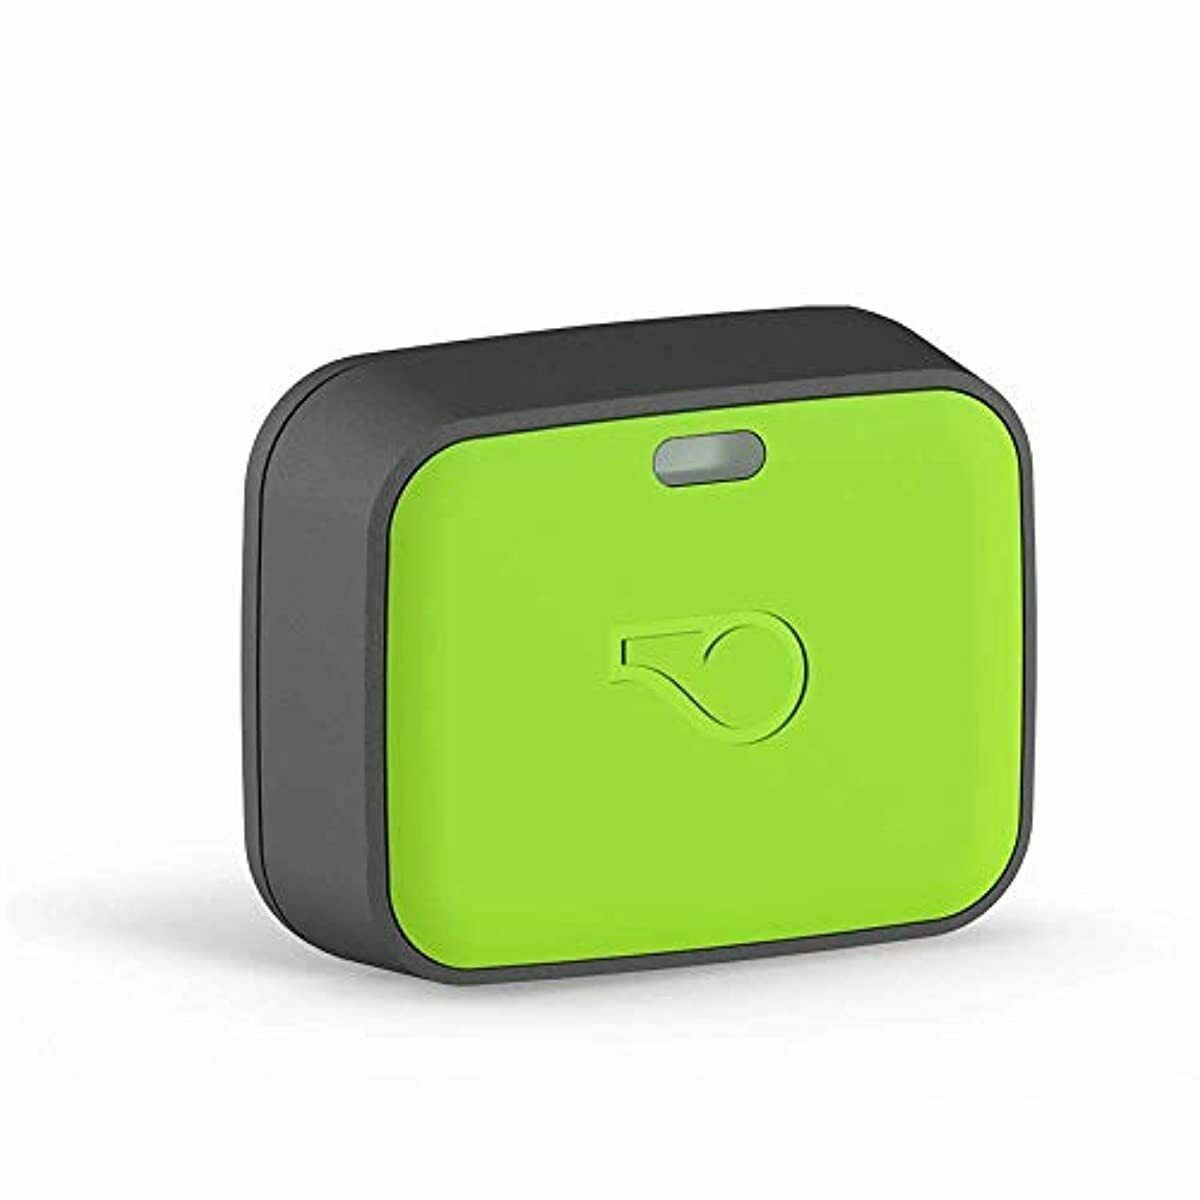 Whistle Go Explore - Ultimate Health Location Tracker For Pets - Waterproof GP - $160.53